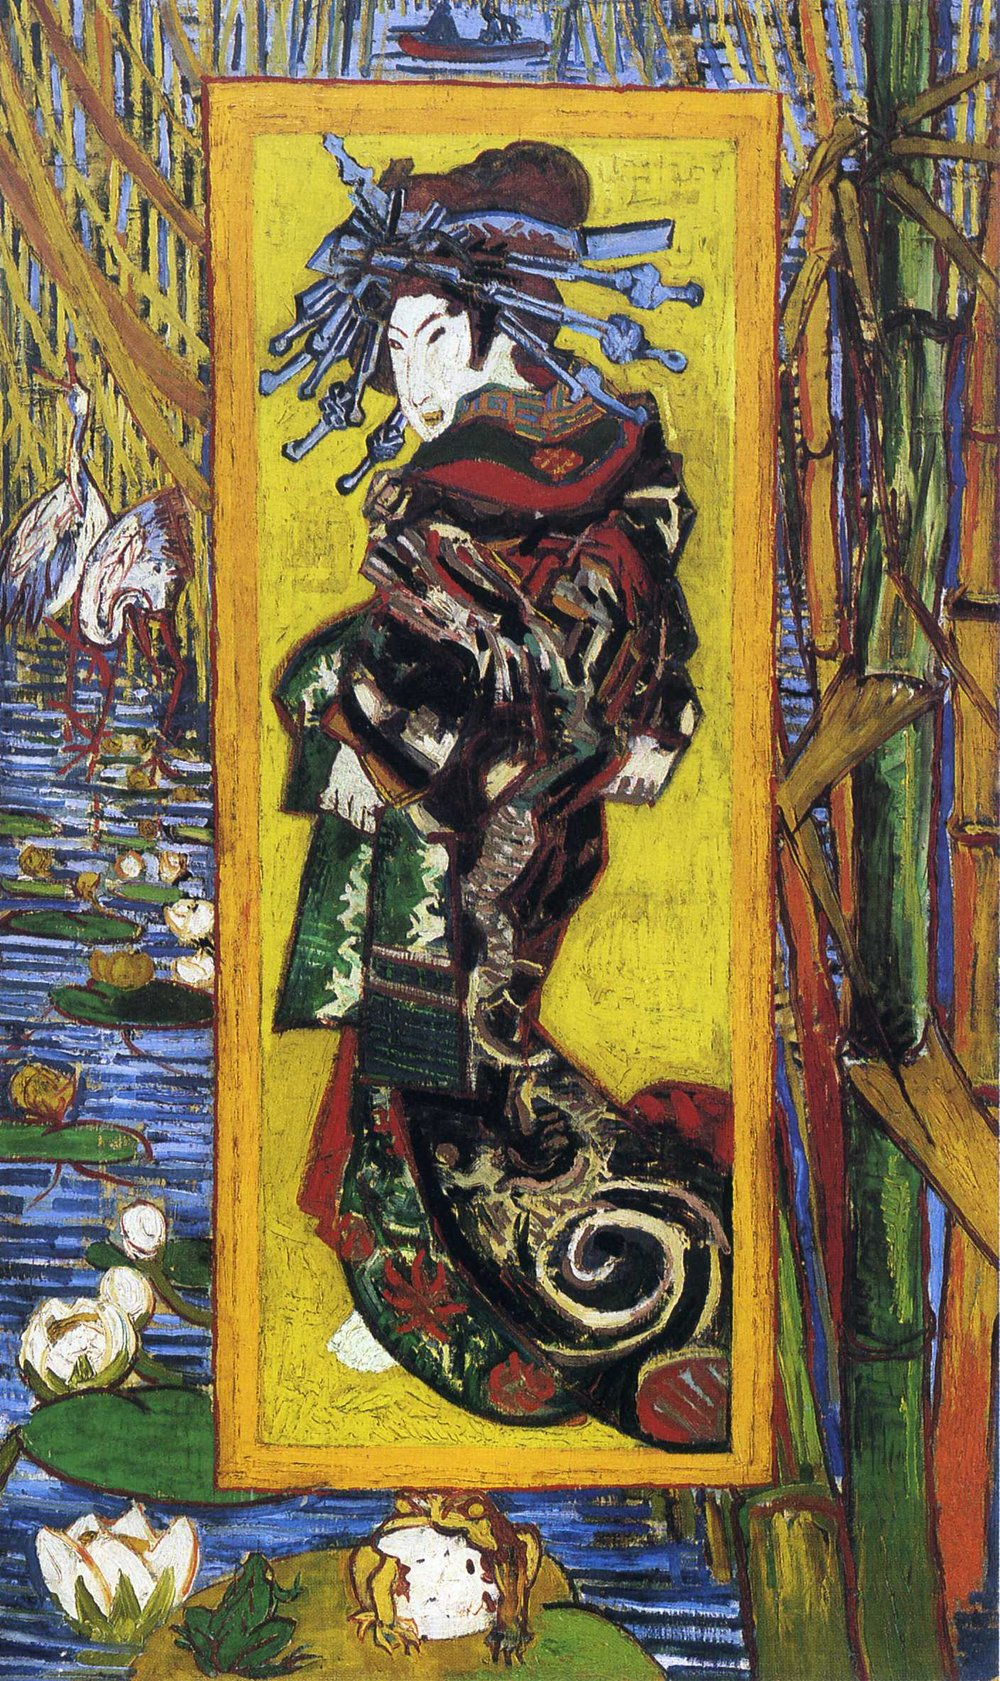 As I am still in the afterglow of my Asia trip, the  Van Gogh and Japan  exhibition in Amsterdam caught my eye. Image: Vincent Van Gogh,  Courtesan (After Eisen)  (1887)